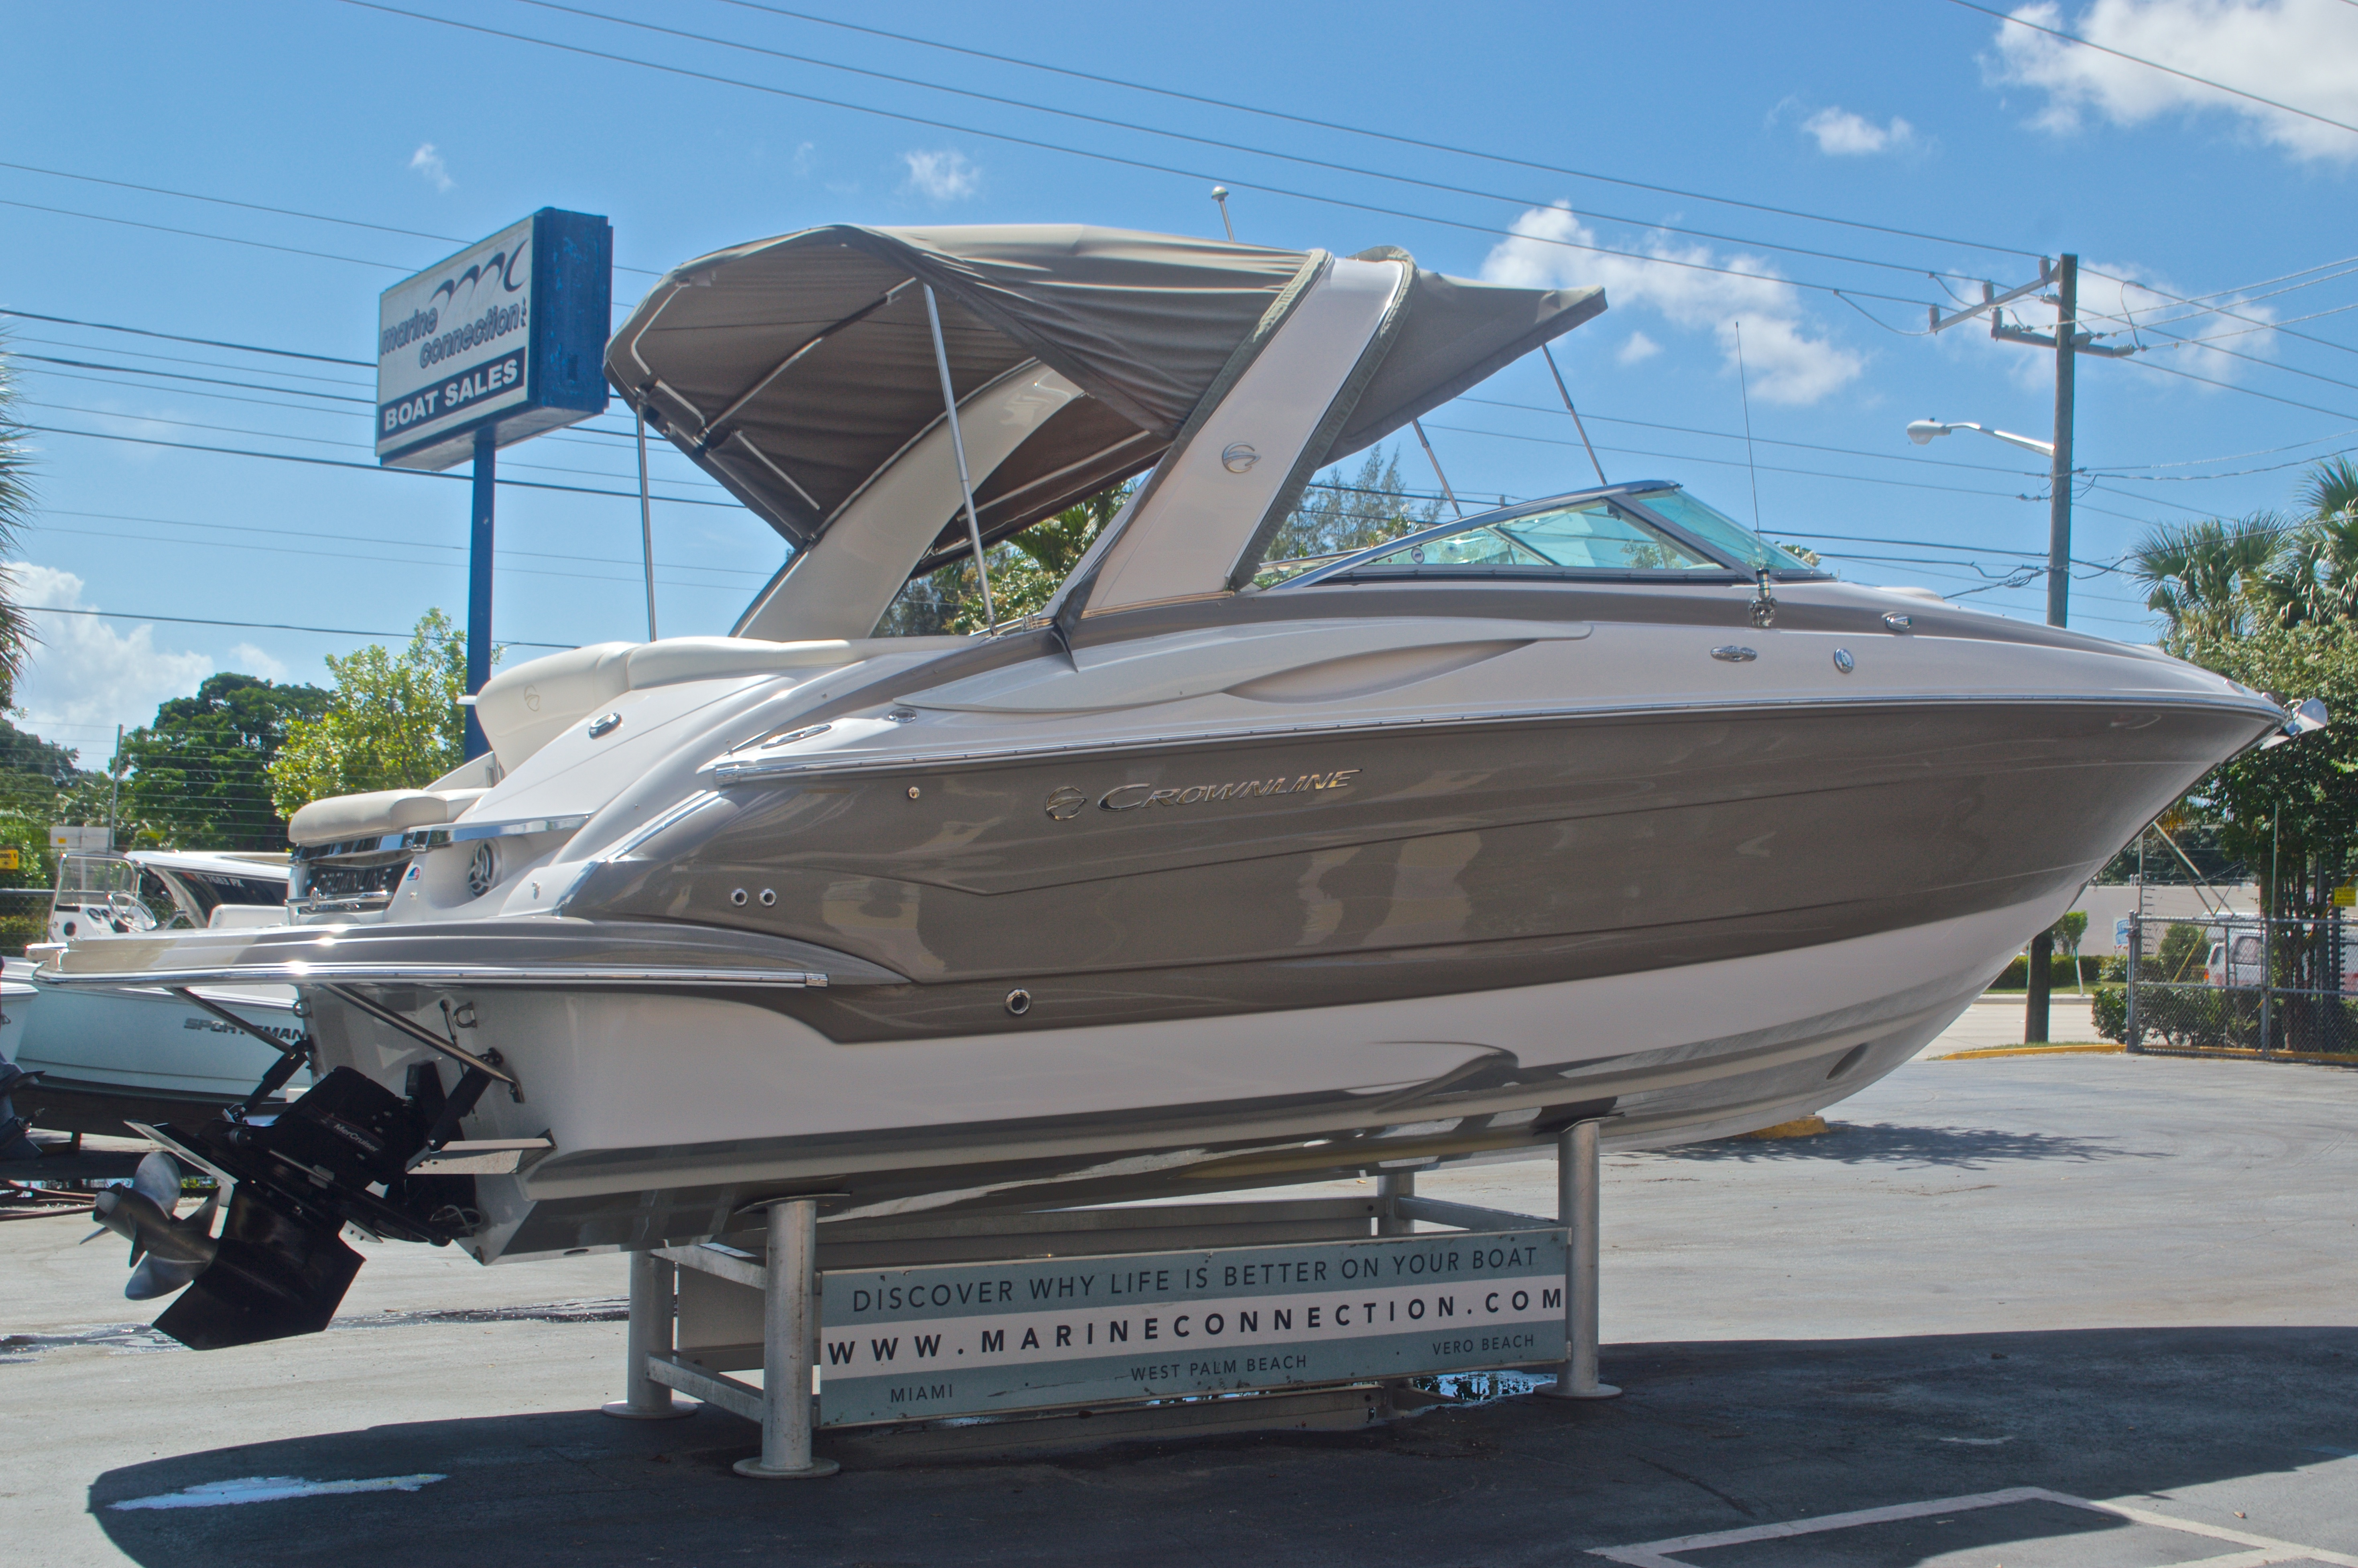 Thumbnail 4 for Used 2009 Crownline 300 LS boat for sale in West Palm Beach, FL